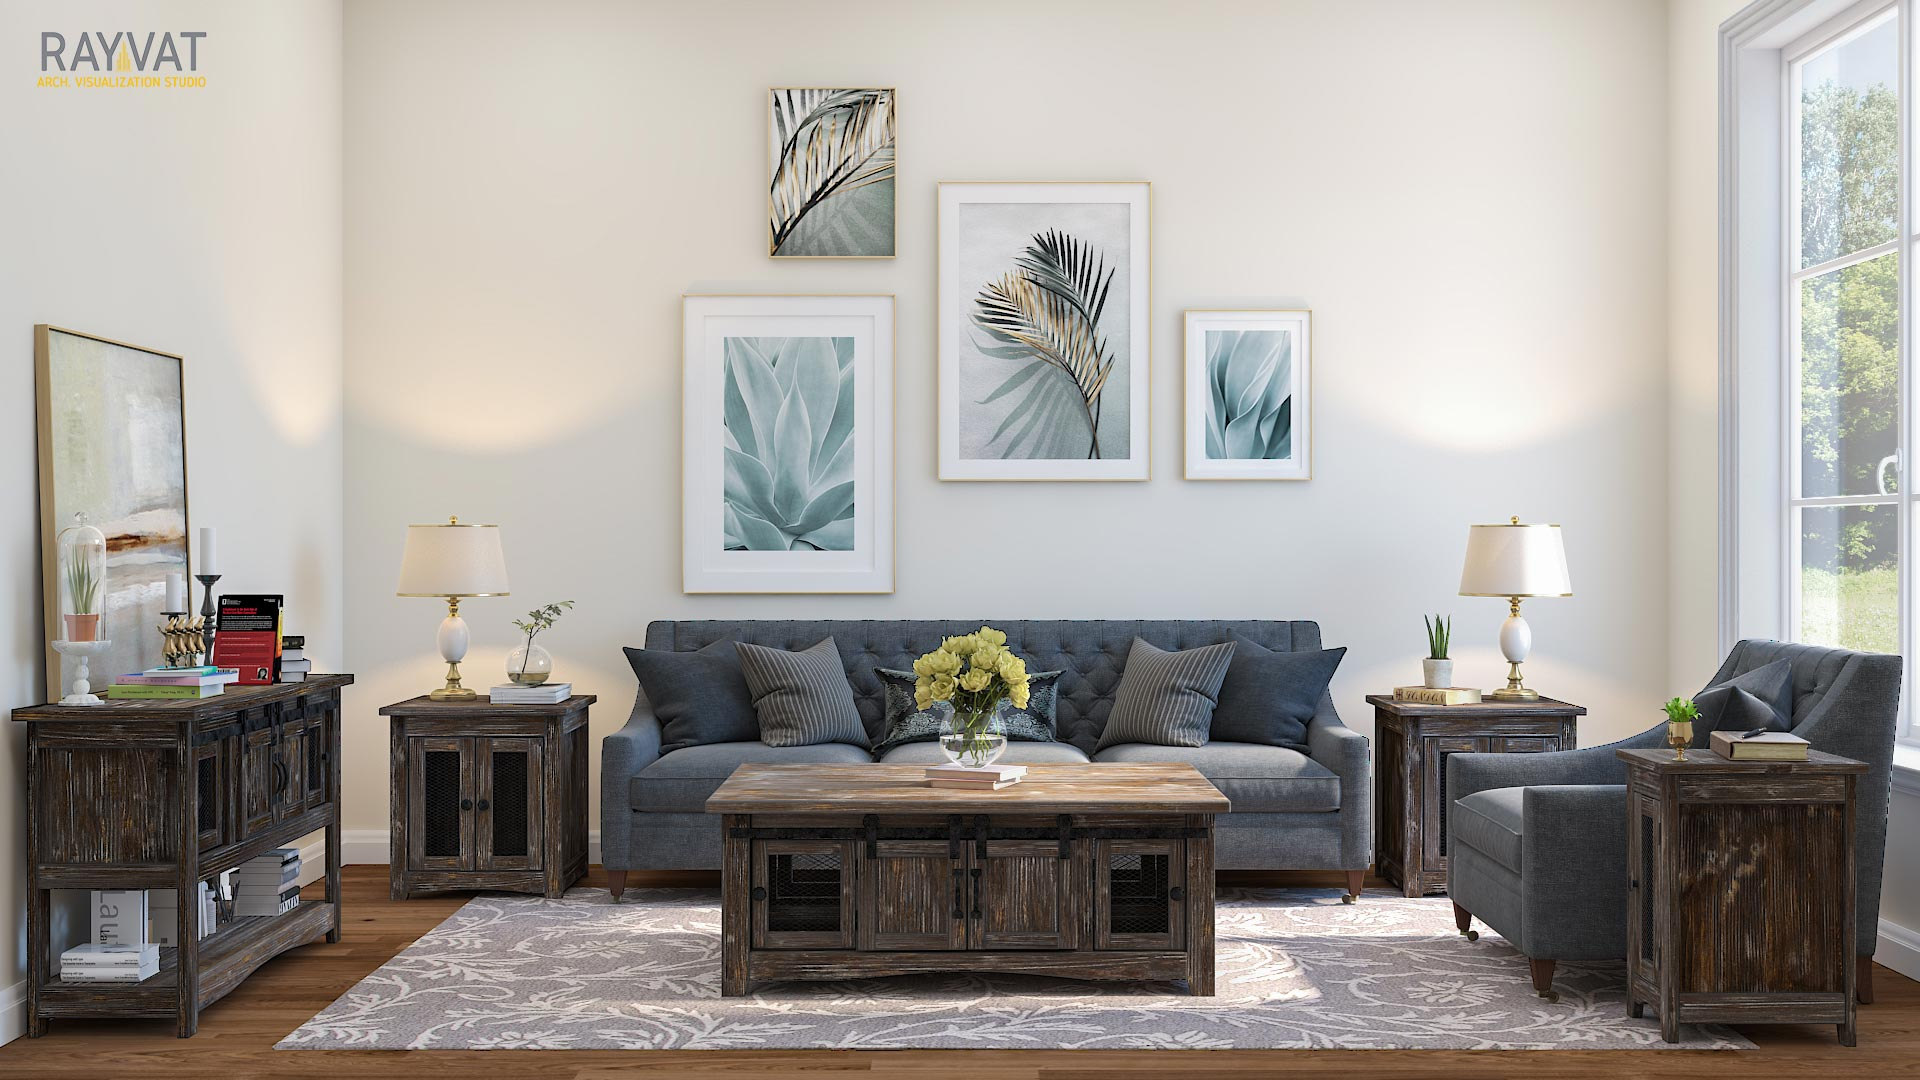 Living Room CGI Shows Rooms at Different Times of the Day